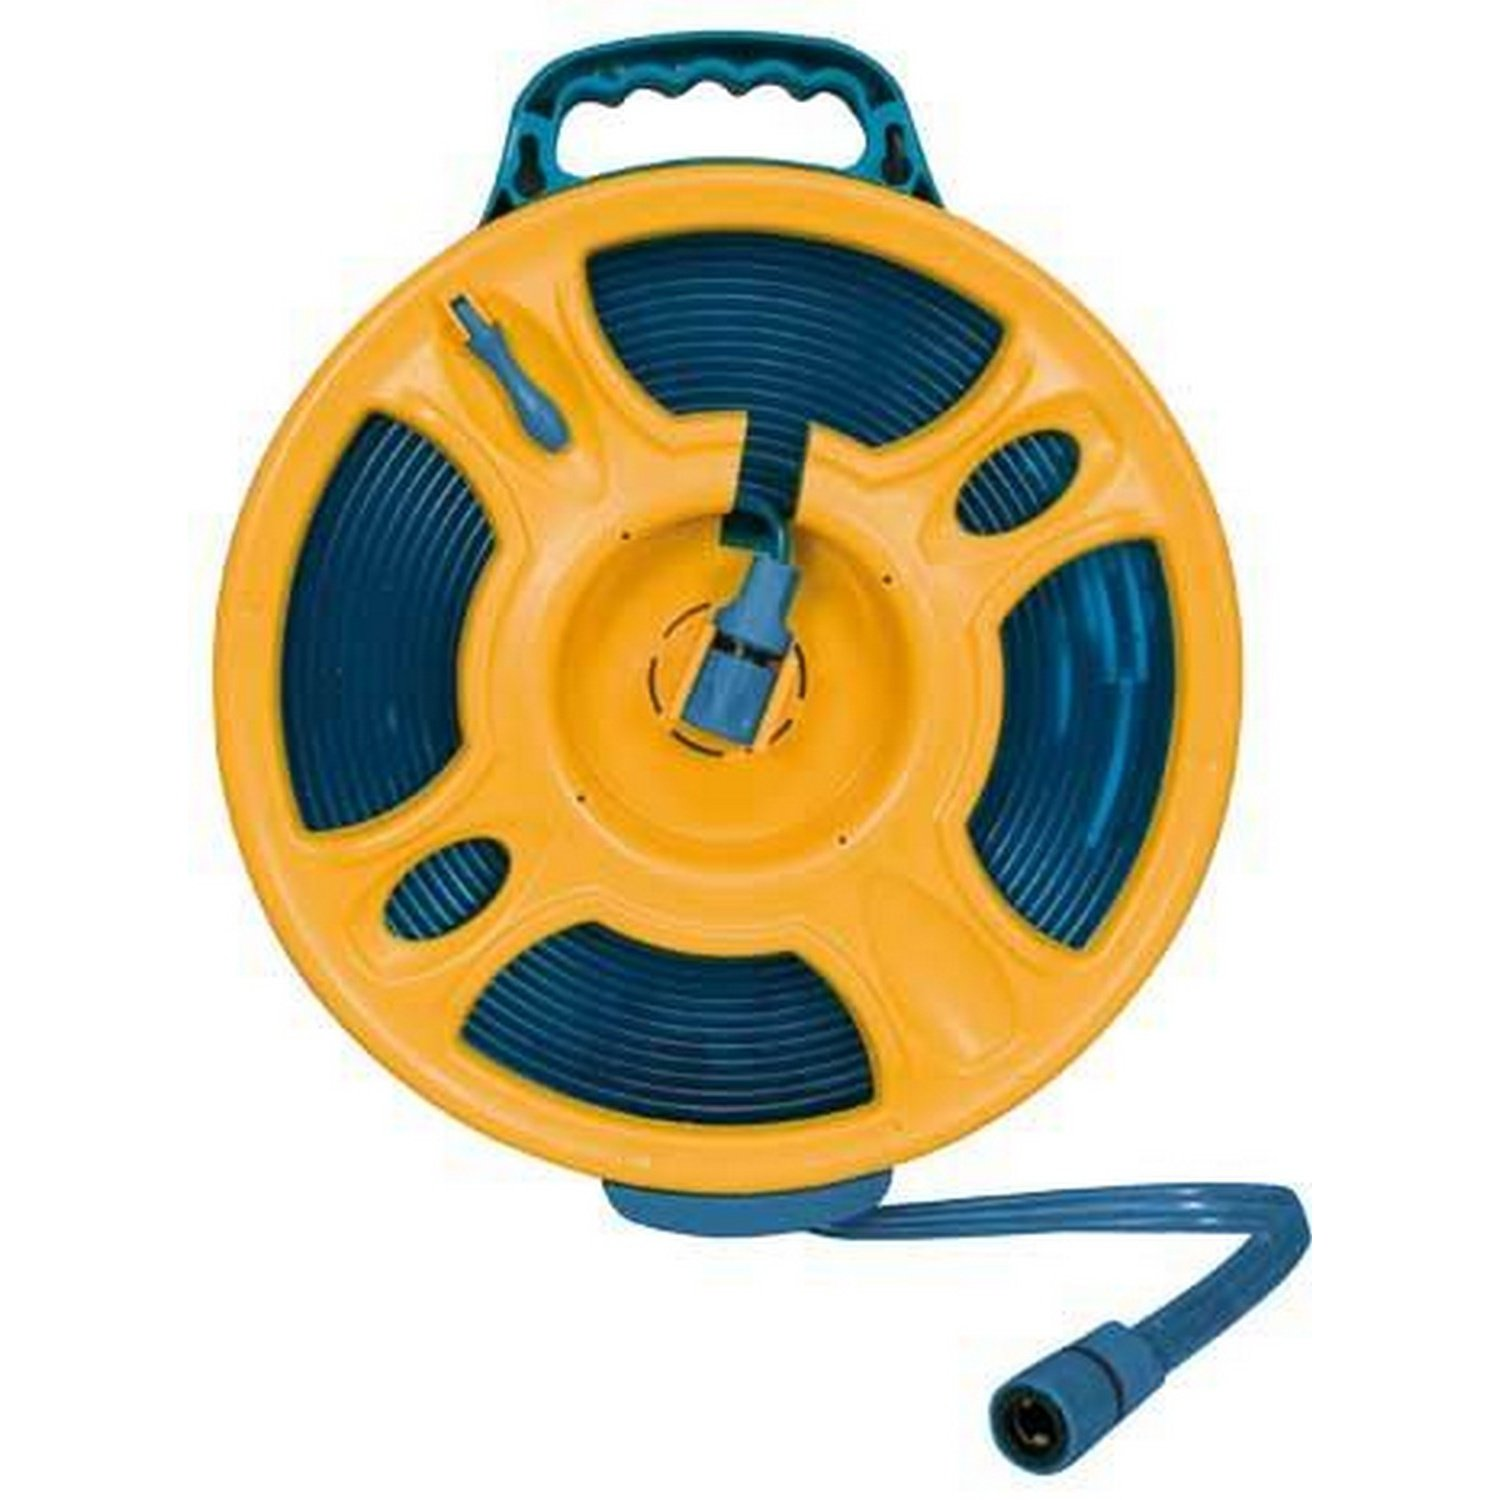 Brunner 15m/49.2ft Flat Hose Reel Roll (One Size) (Blue/Yellow)